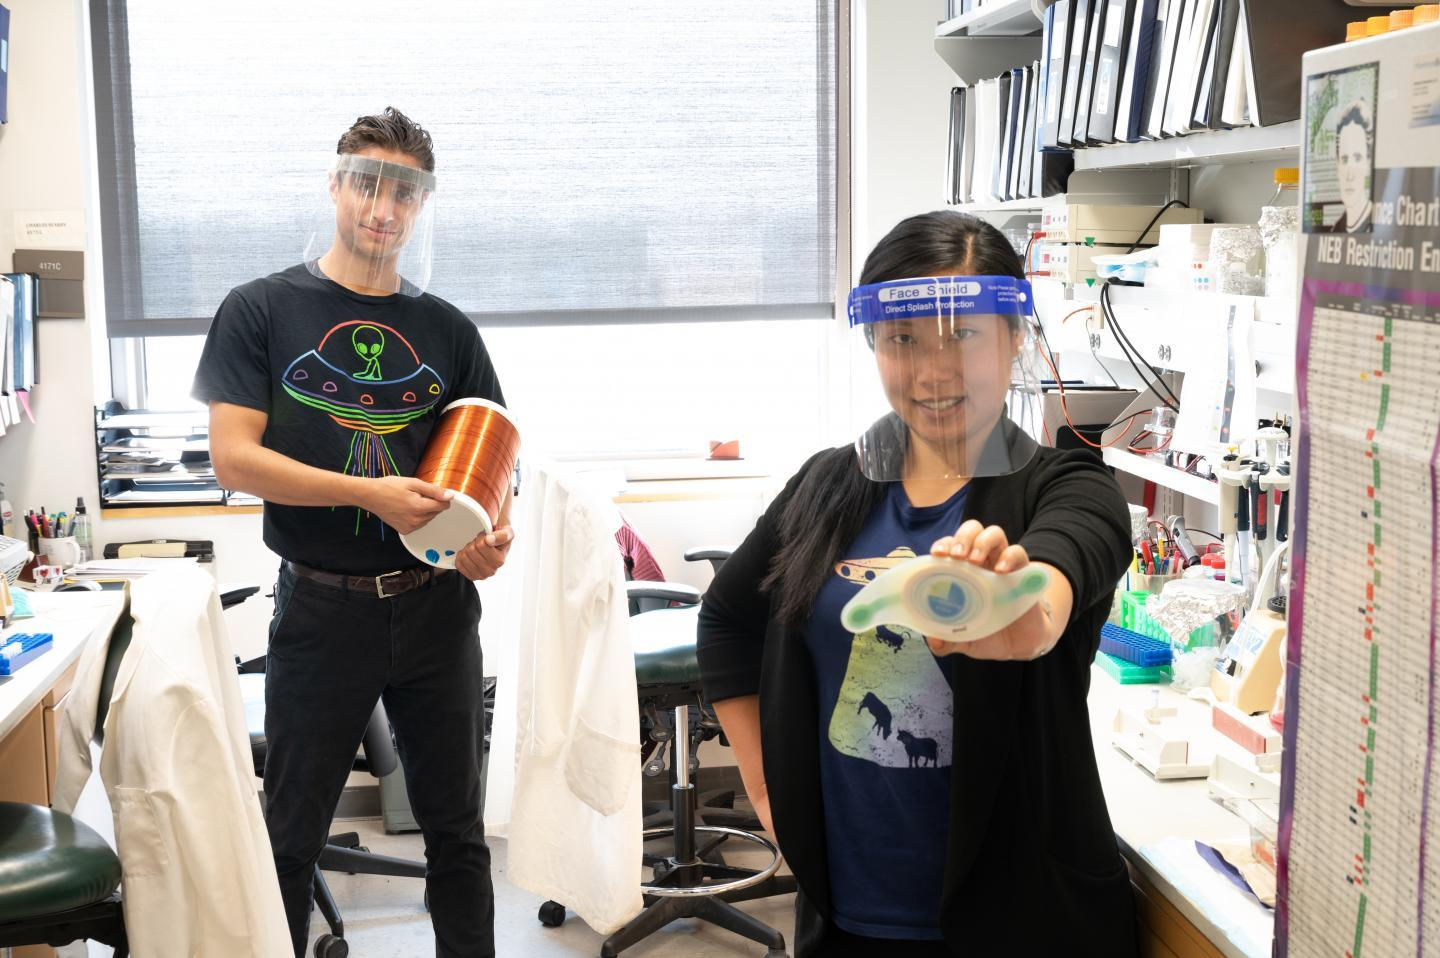 Study authors Calvin Carter and Sunny Huang in the lab at the University of Iowa